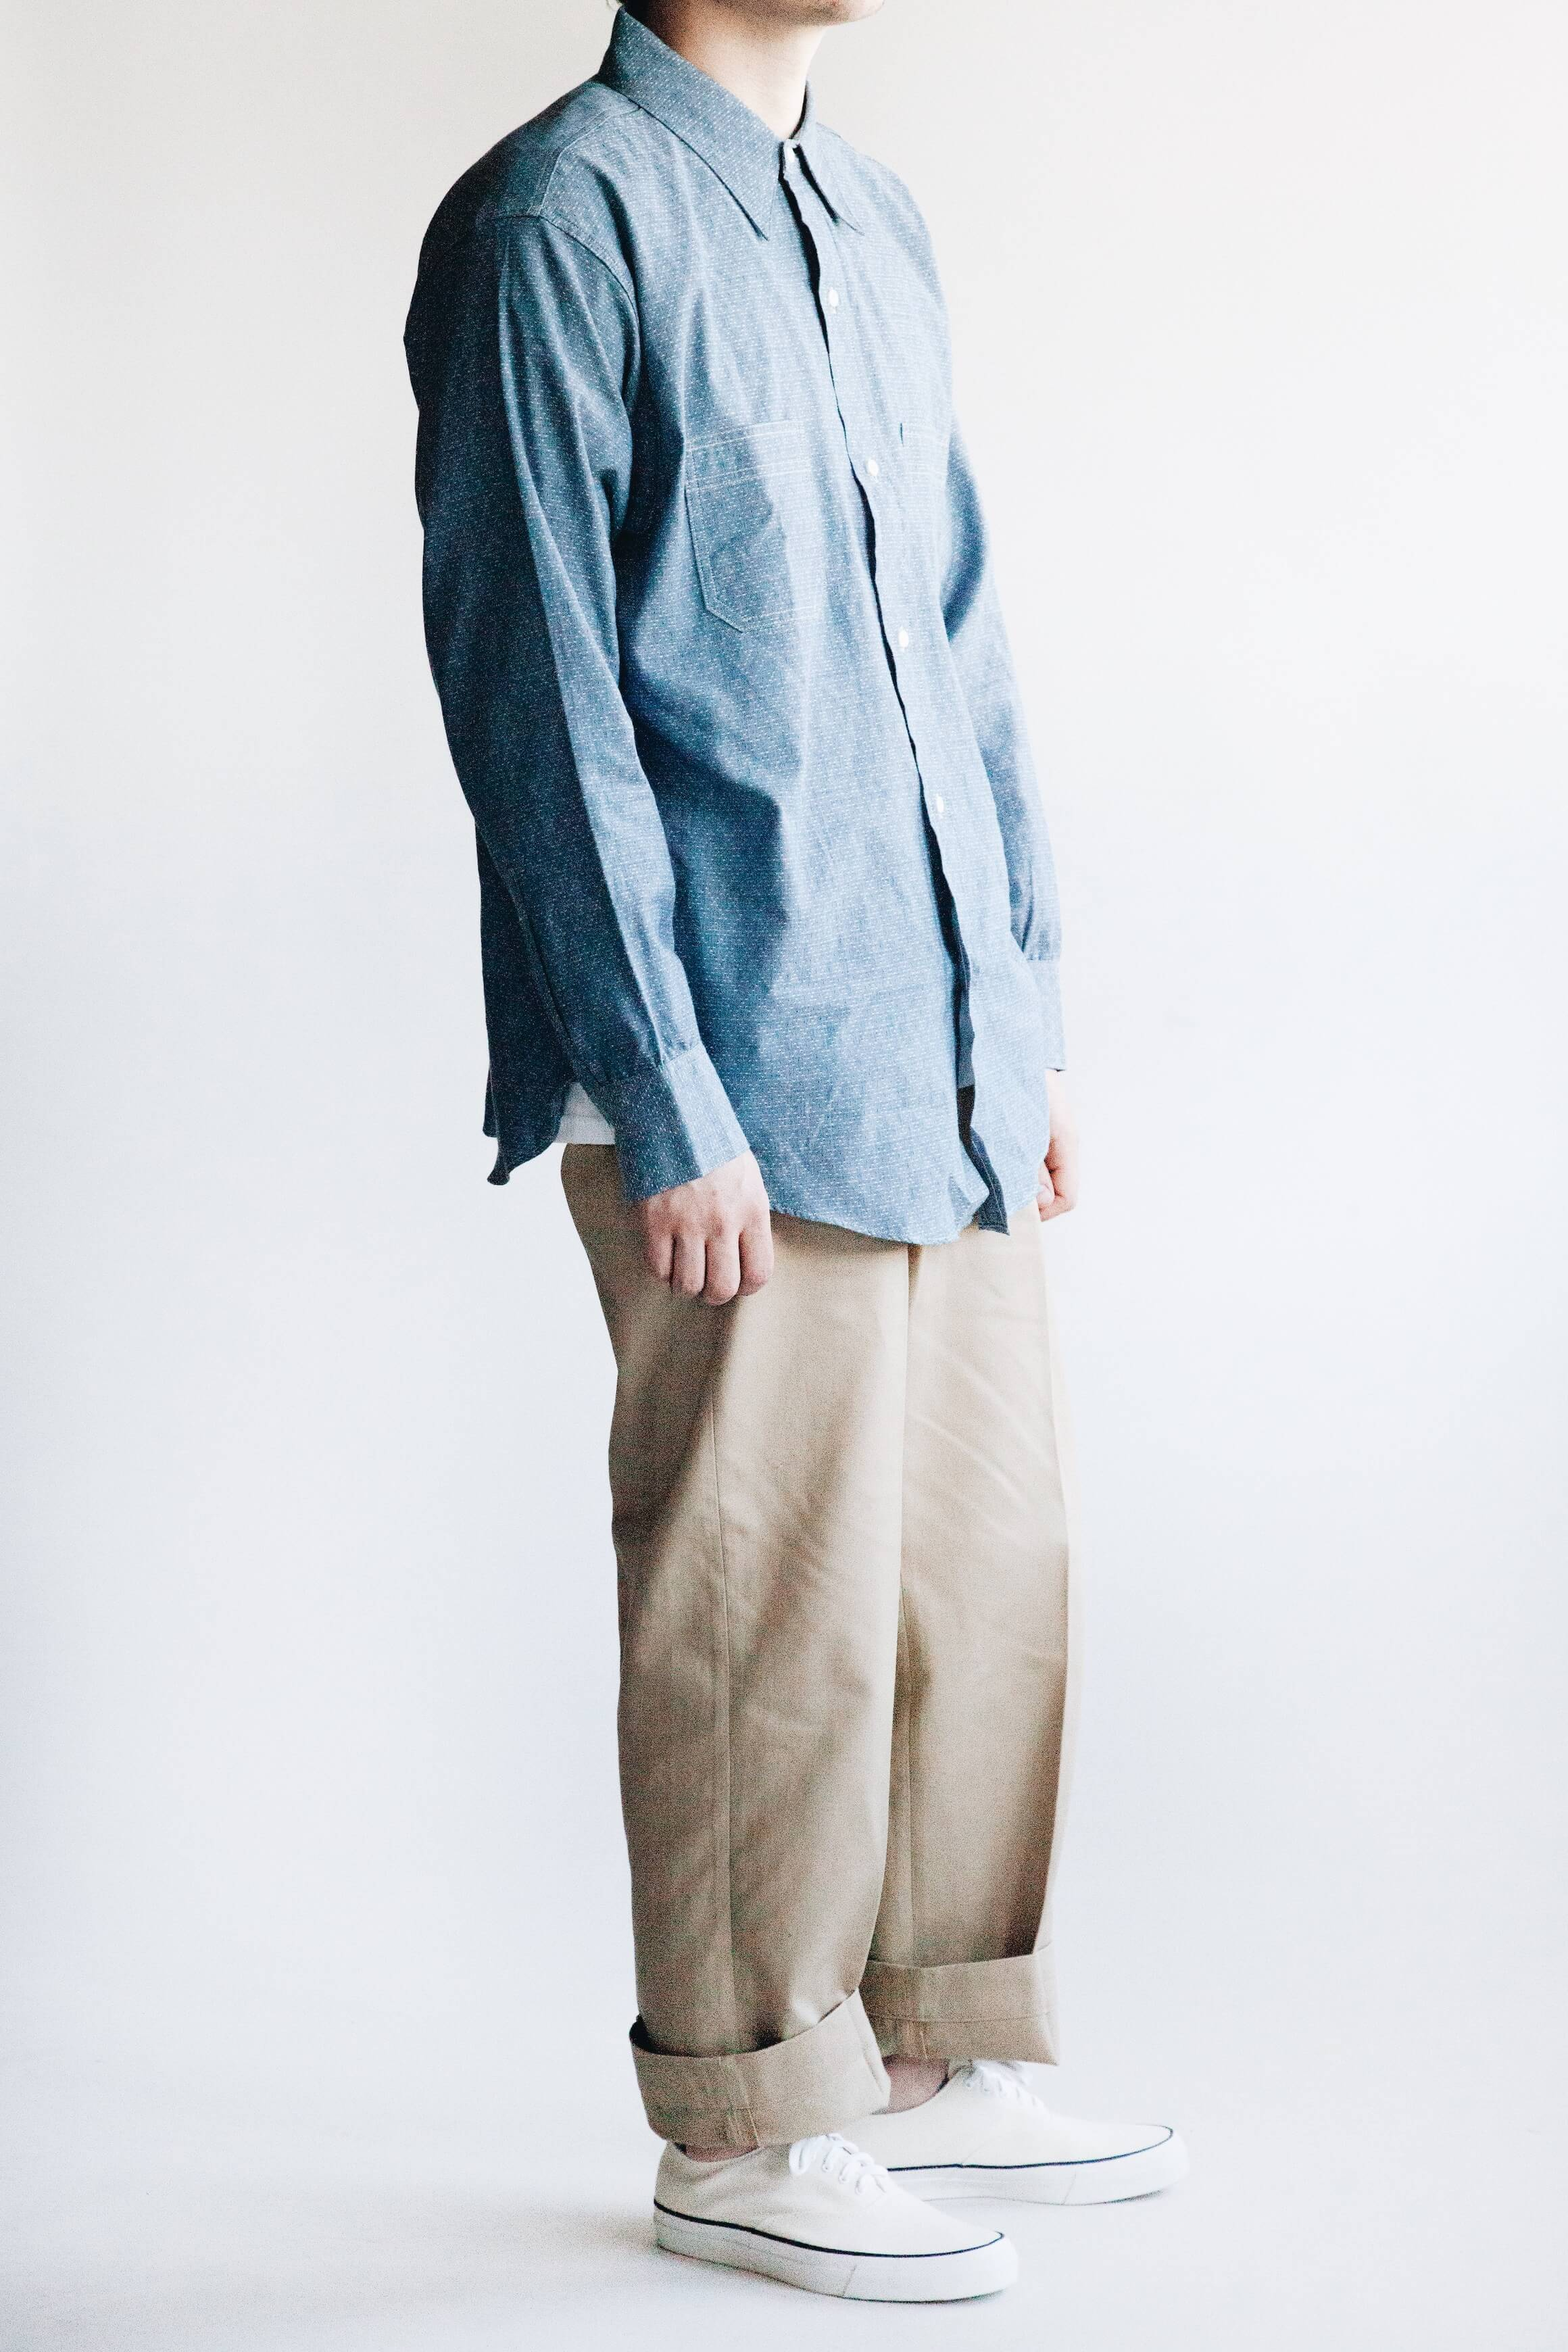 big yank 41 a shirts dd chambray shirt, big yank 1963 chino pants and wakouwa deck shoes on body